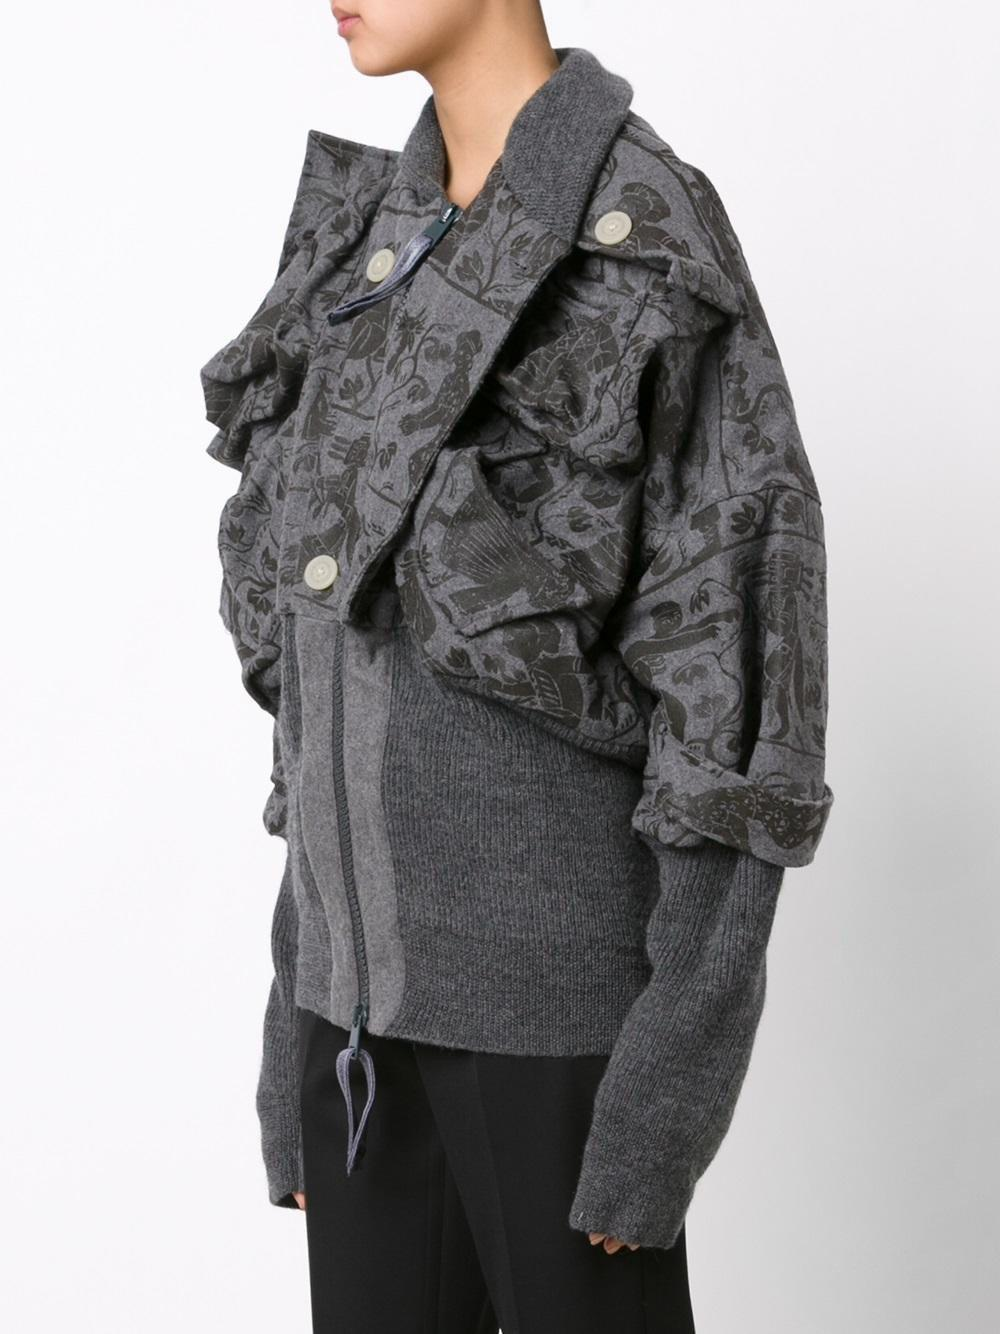 c0846a48a Vivienne Westwood Anglomania Gray Mini 'clint Eastwood' Bomber Jacket